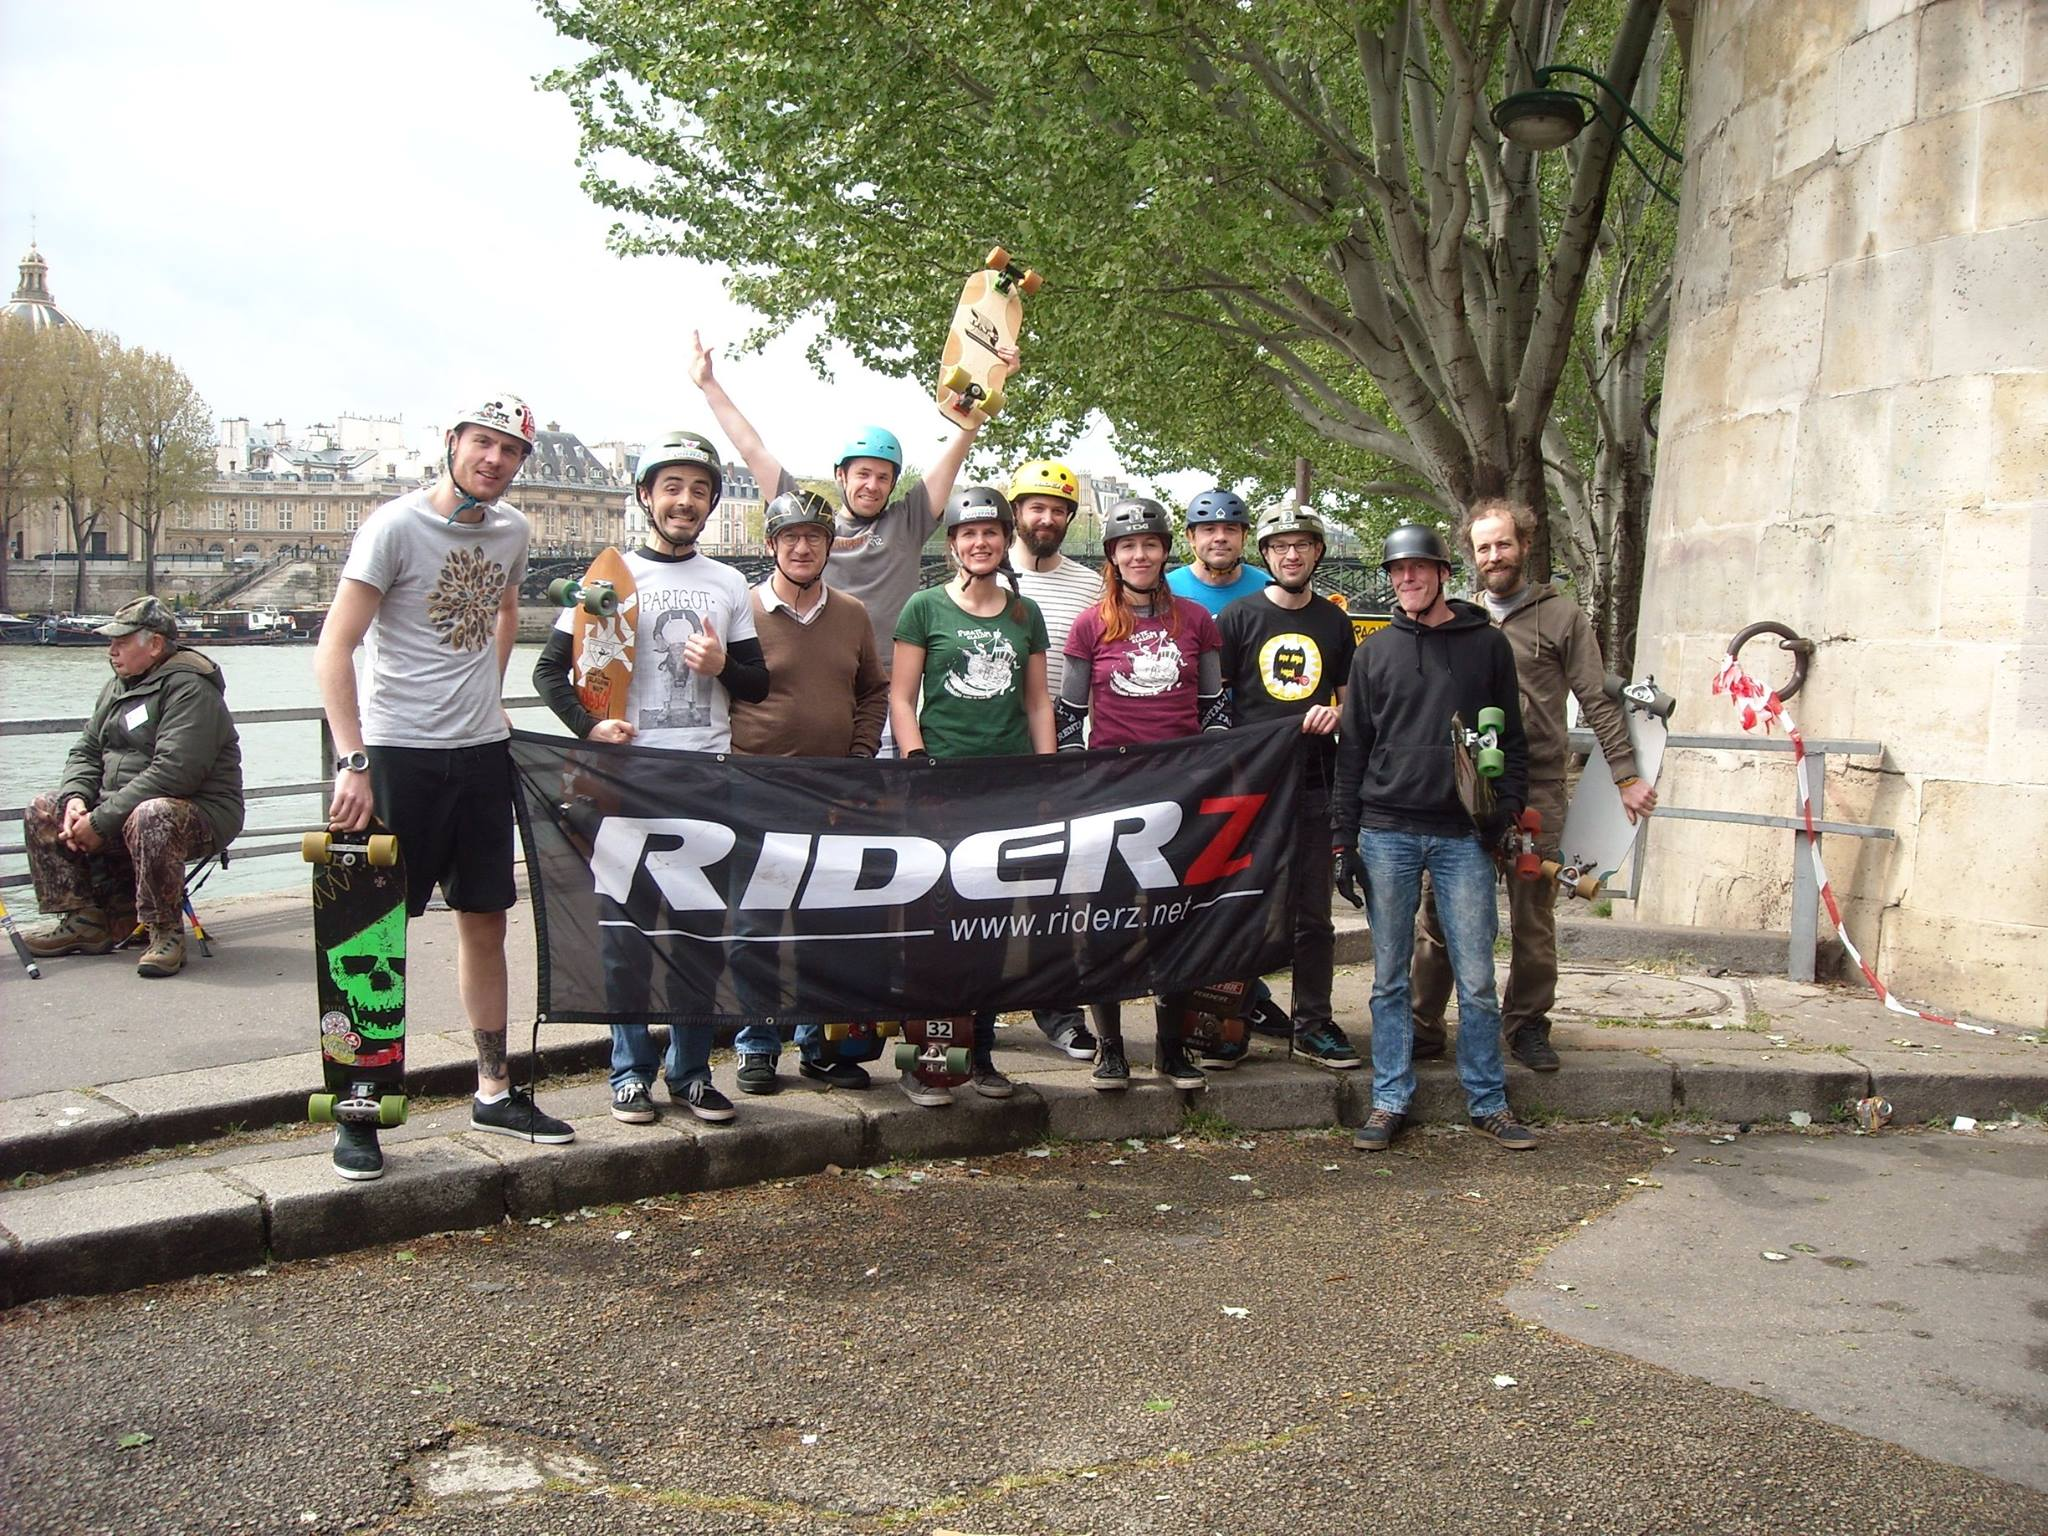 Pirate Slalom Riderz 2016 - 5 - Voies sur berge - Paris